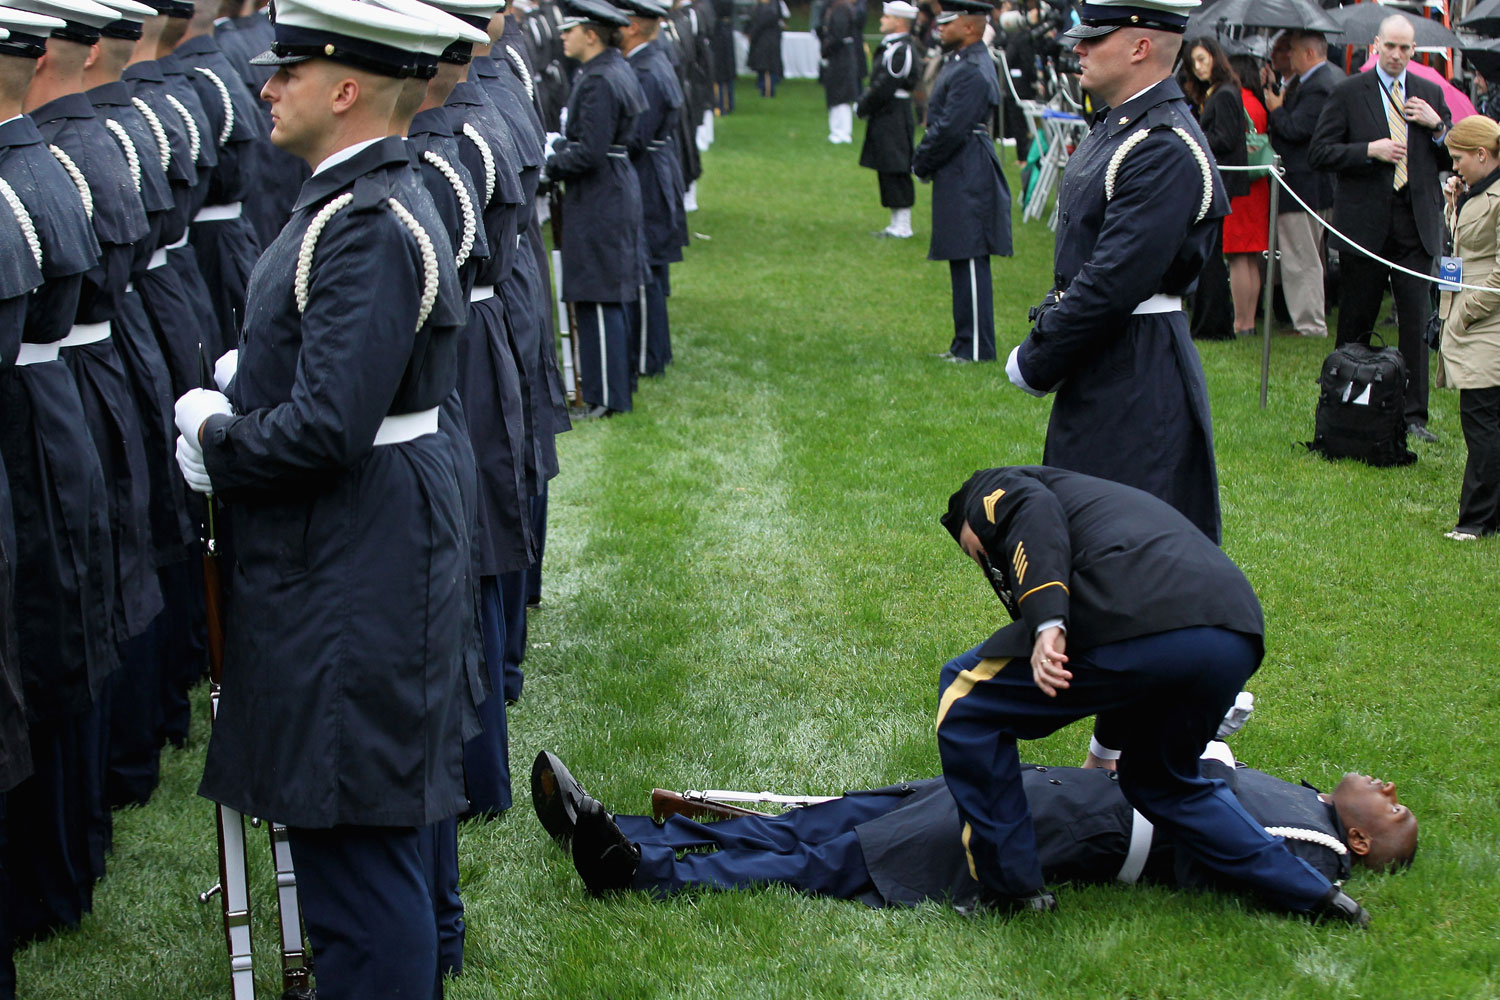 October 13, 2011. A member of the U.S. Coast Guard falls backwards during a welcome ceremony for President Lee Myung-bak of the Republic of Korea on the South Lawn of the White House in Washington, DC.